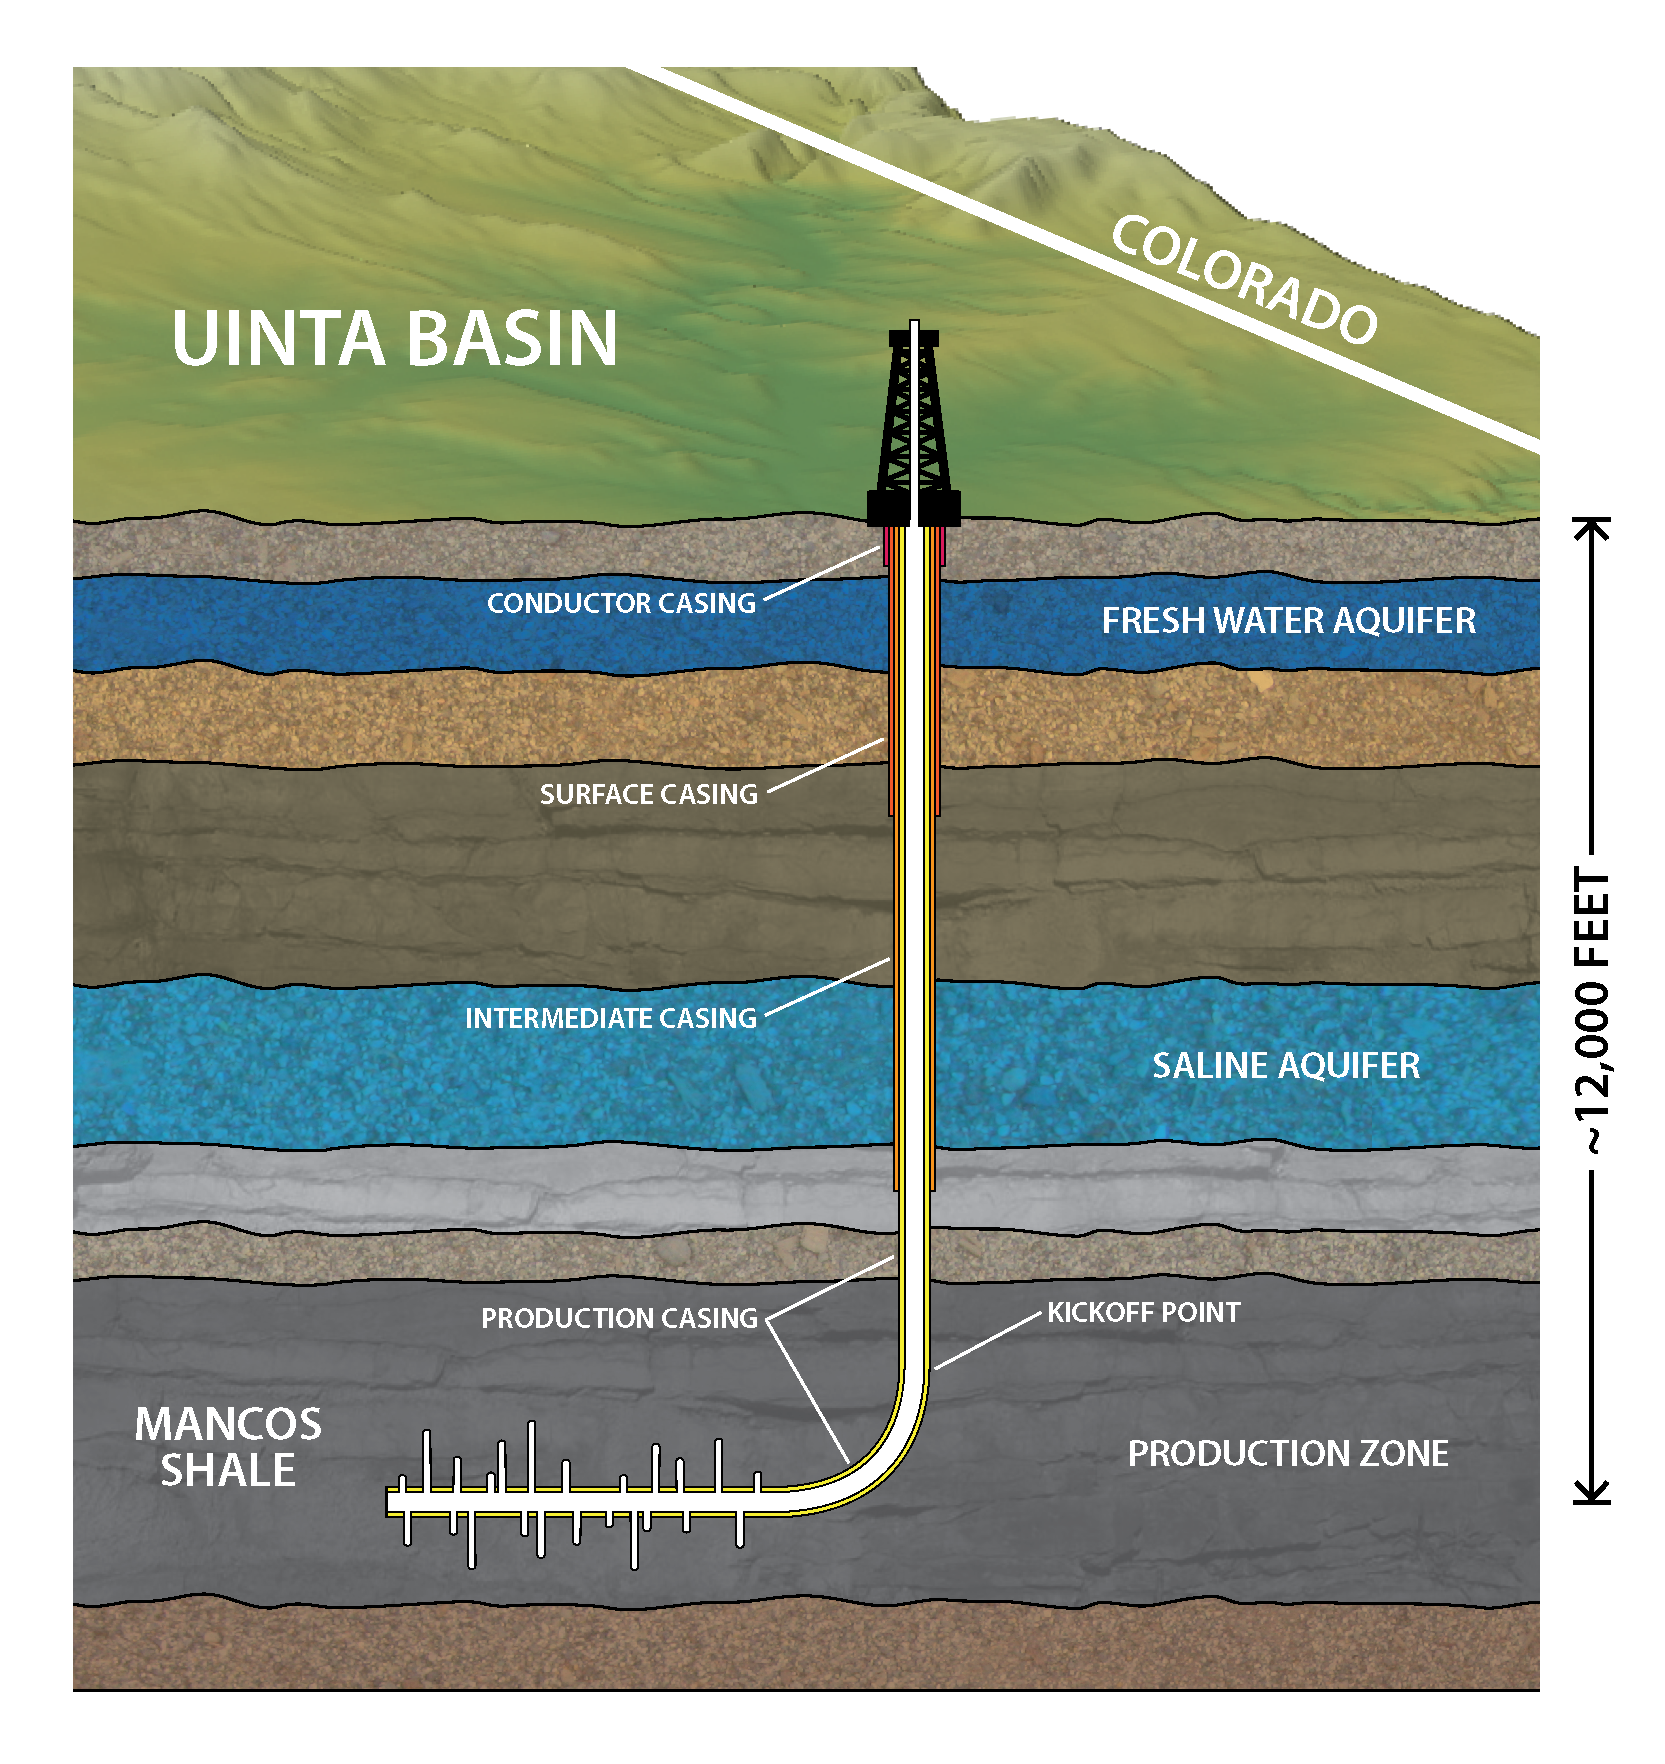 Groundwater Protection in Oil and Gas Production | American ... on oil well down hole diagram, donkey oil diagram, training for oil well diagram, oil extraction well diagram, oil well features, cementing oil wells diagram, oilfield well diagram, oil well drawing, tubing head wellhead diagram, well packer diagram, oil well bore, oil well description, basic oil well diagram, oil well drilling process, oil well accessories, oil tank battery schematic, oil well bailer, drilled well diagram, oil wellhead schematic, horizontal well diagram,